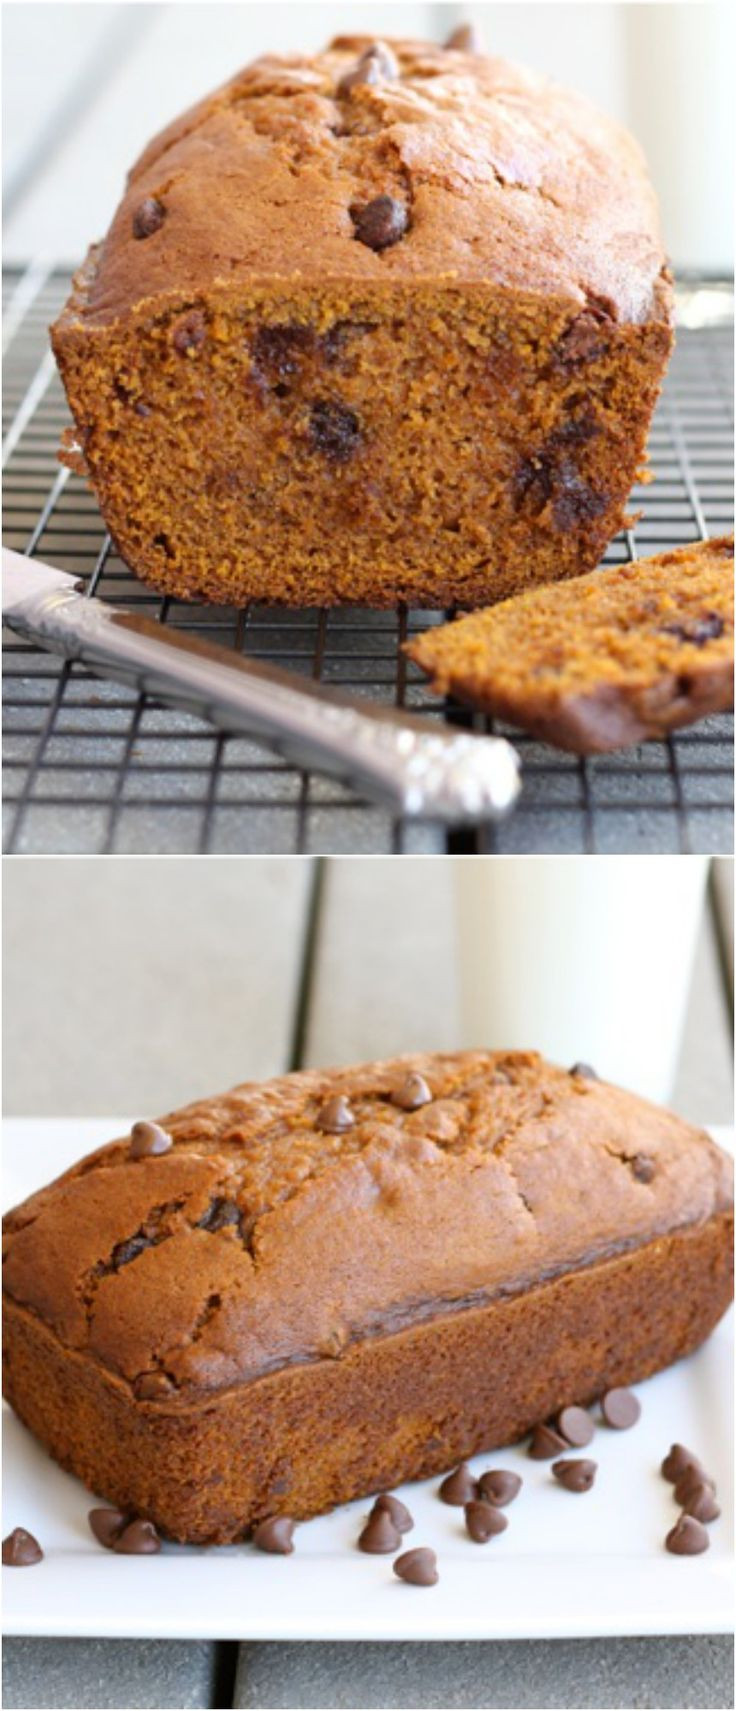 Chocolate Pumpkin Bread  The BEST Pumpkin Chocolate Chip Bread Recipe on